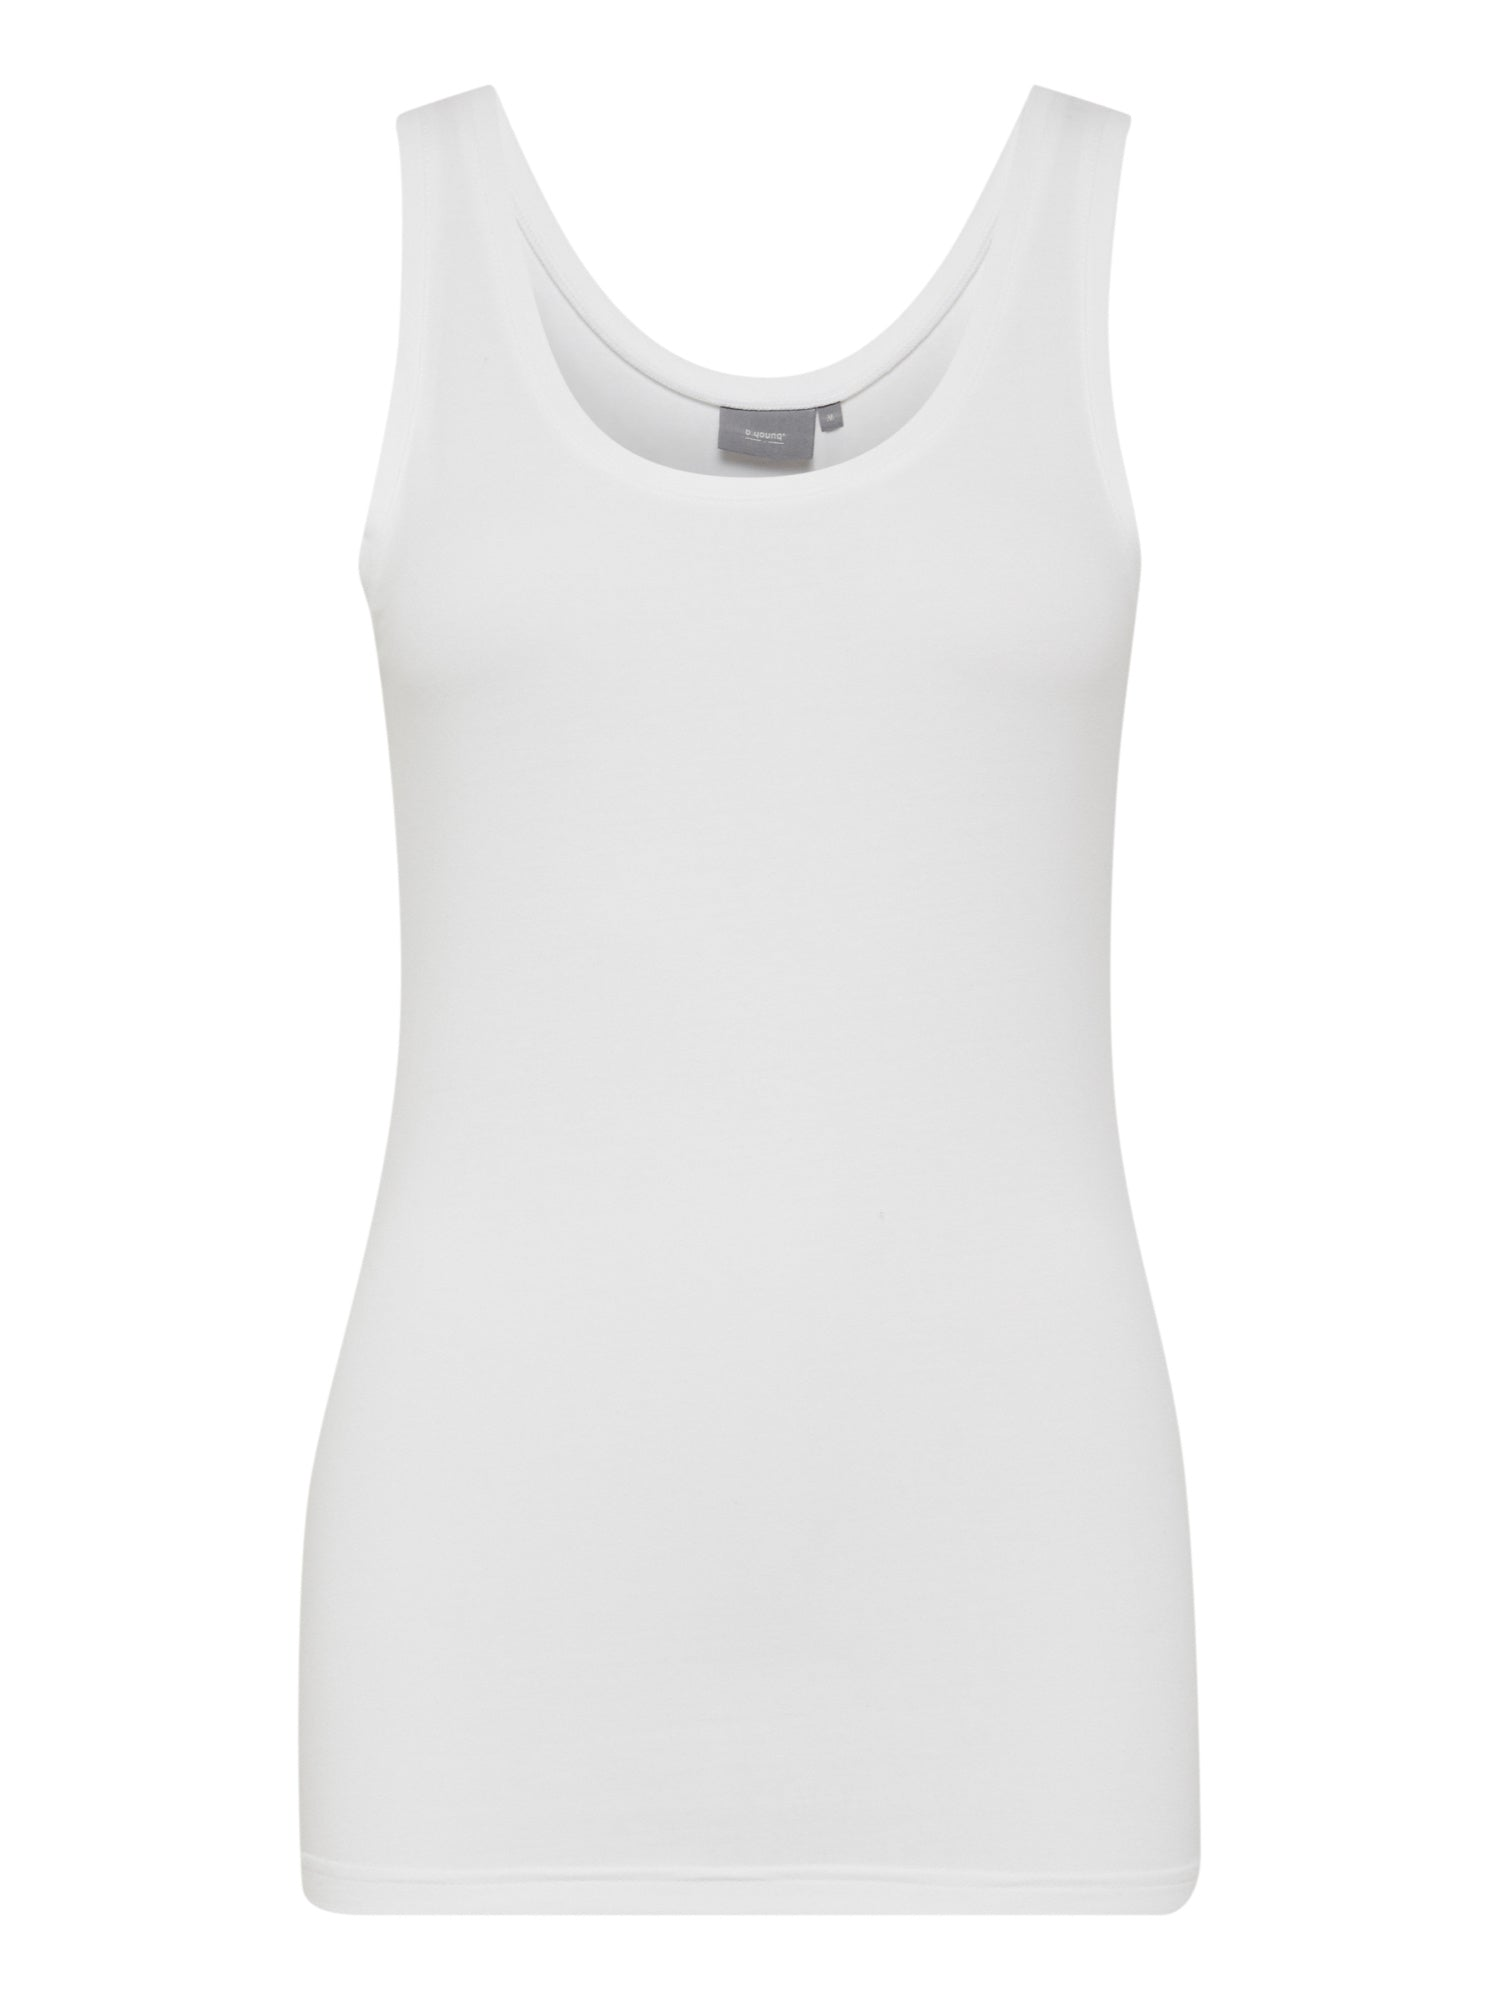 Image of B Young Pamila Stretchy Vest Top in White